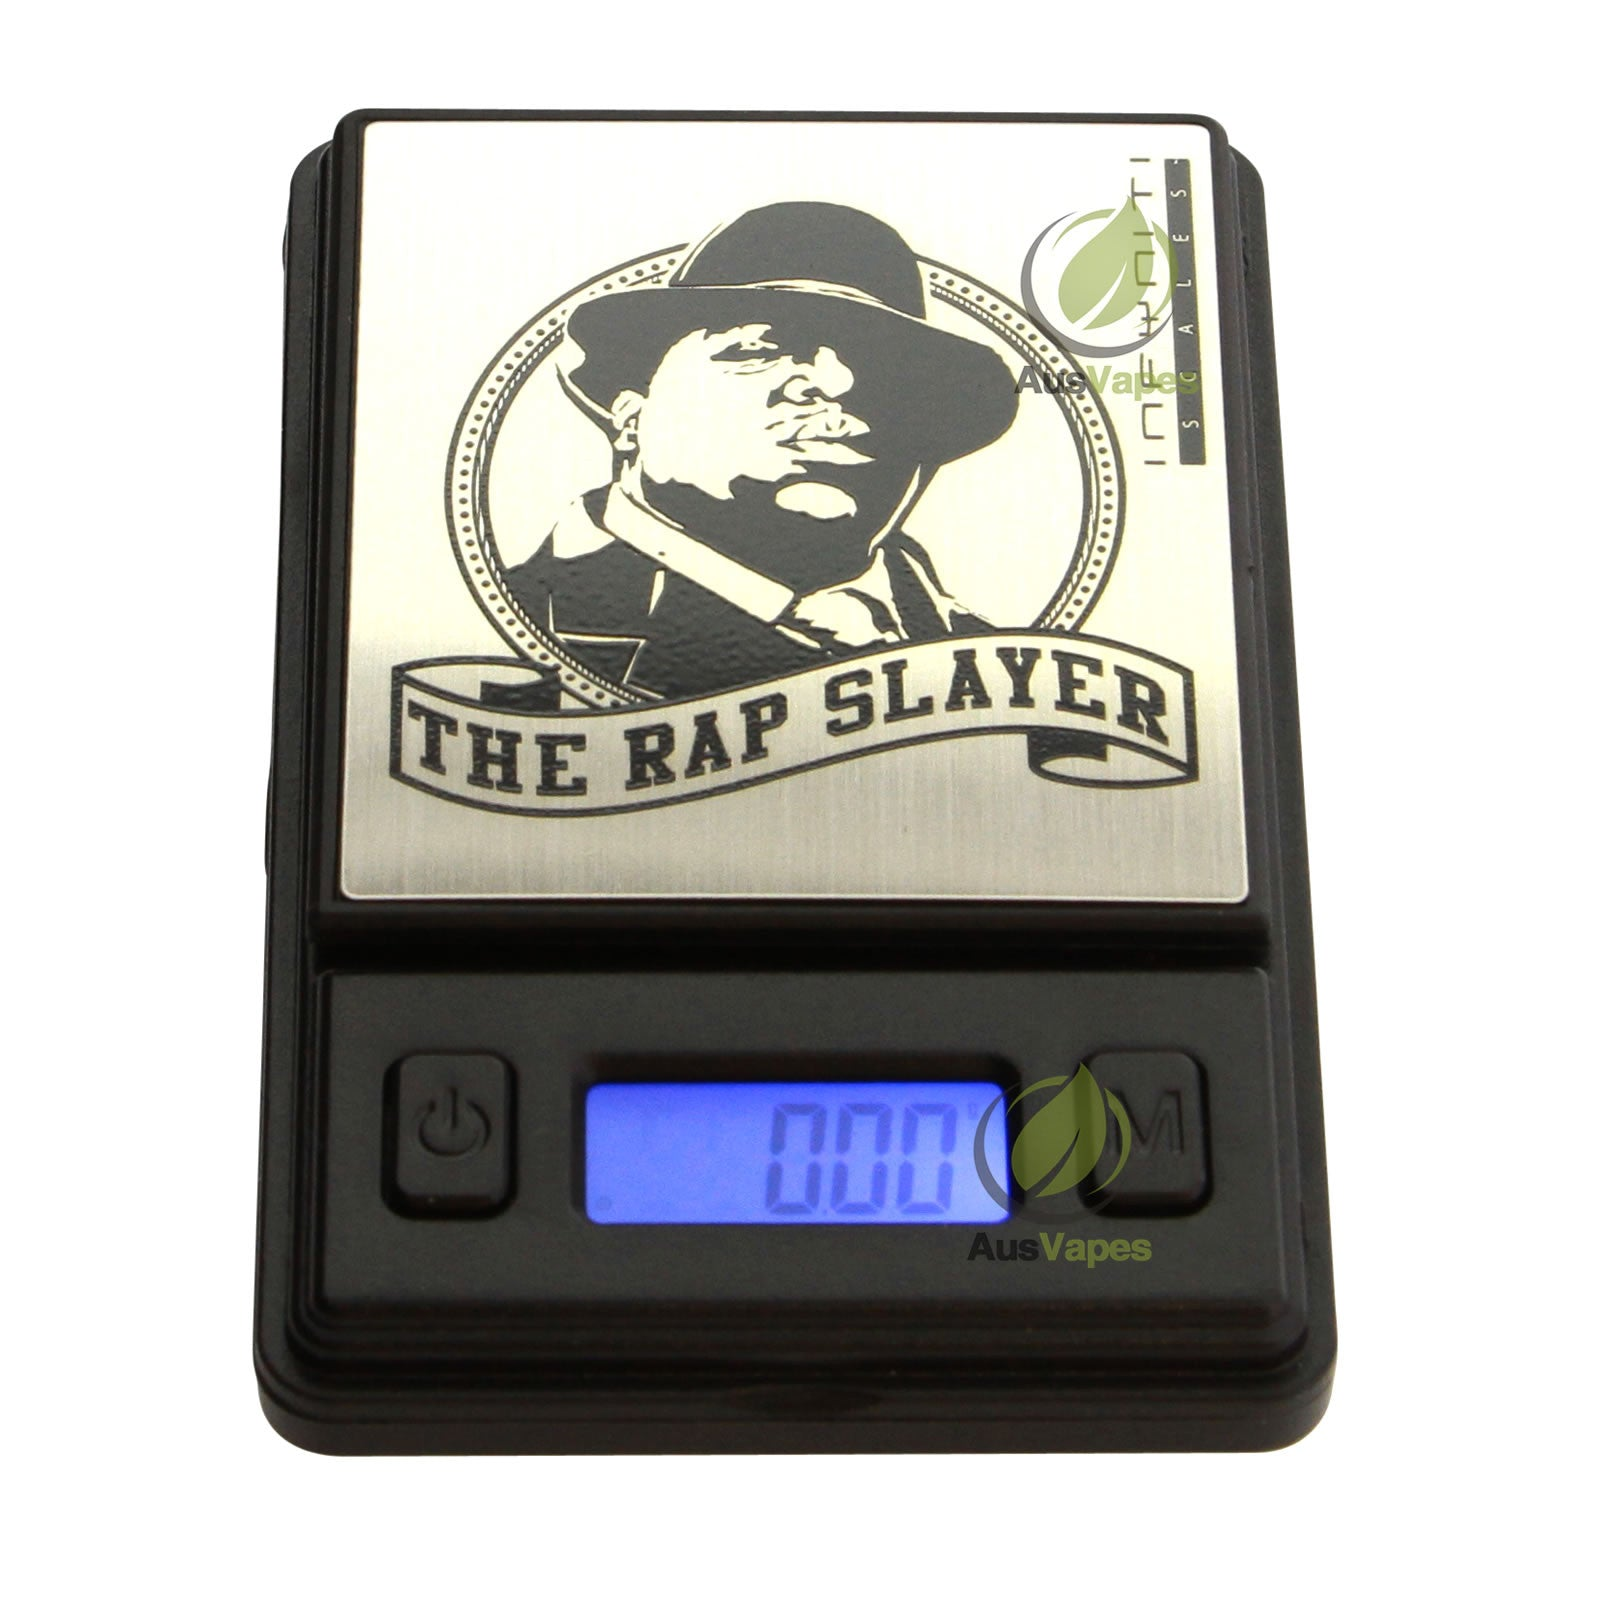 DISCONTINUED Infyniti Notorious B.I.G Virus Digital Pocket Scale 50g x 0.01g